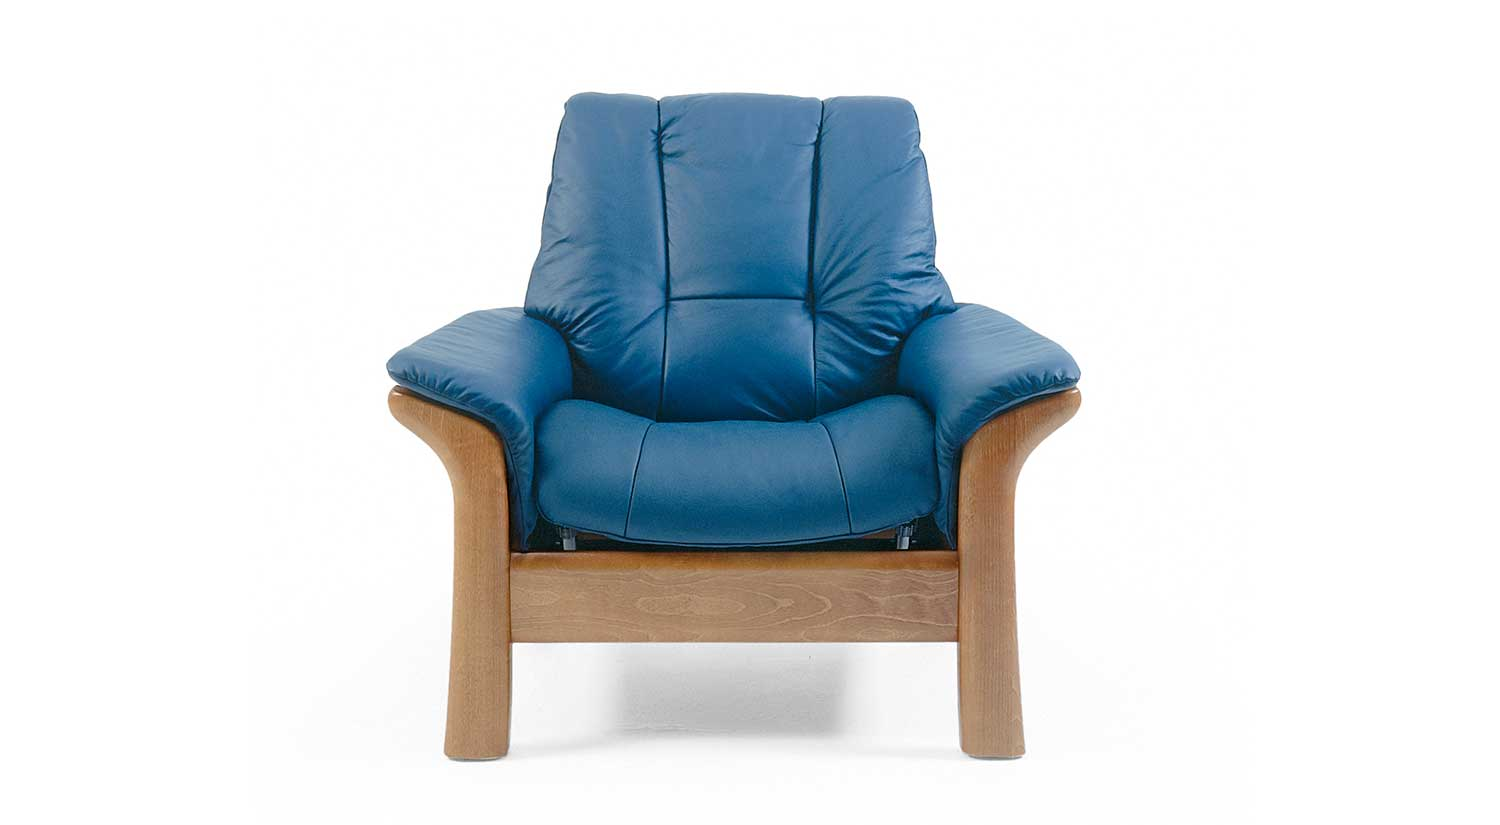 Circle Furniture Windsor Lowback Chair Stressless